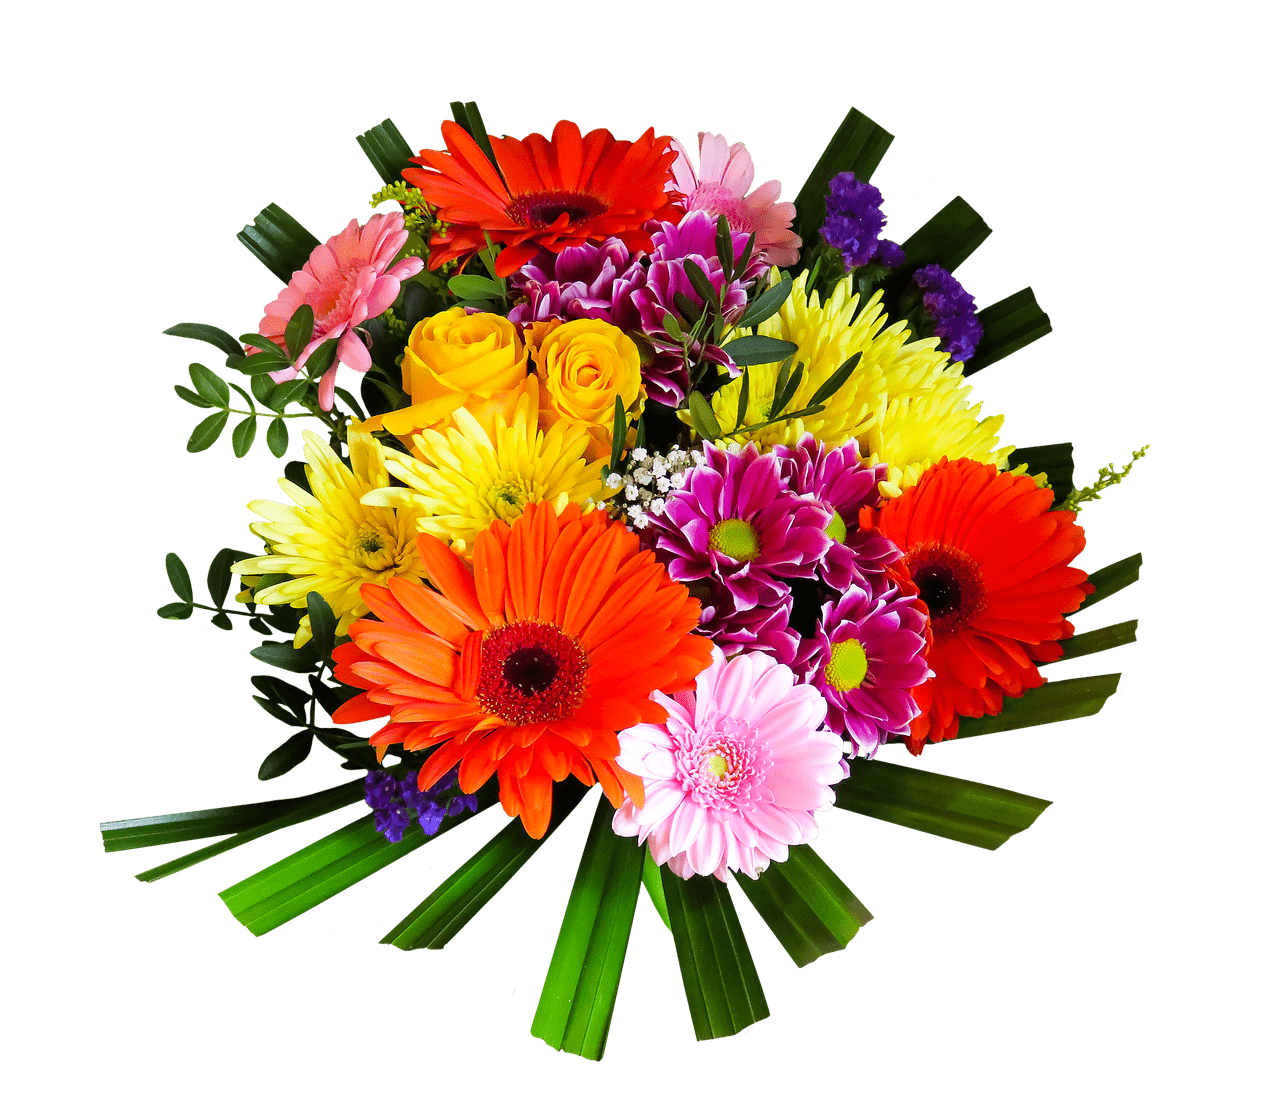 clip art Brightly coloured transparent png. Bouquet clipart bright colored flower